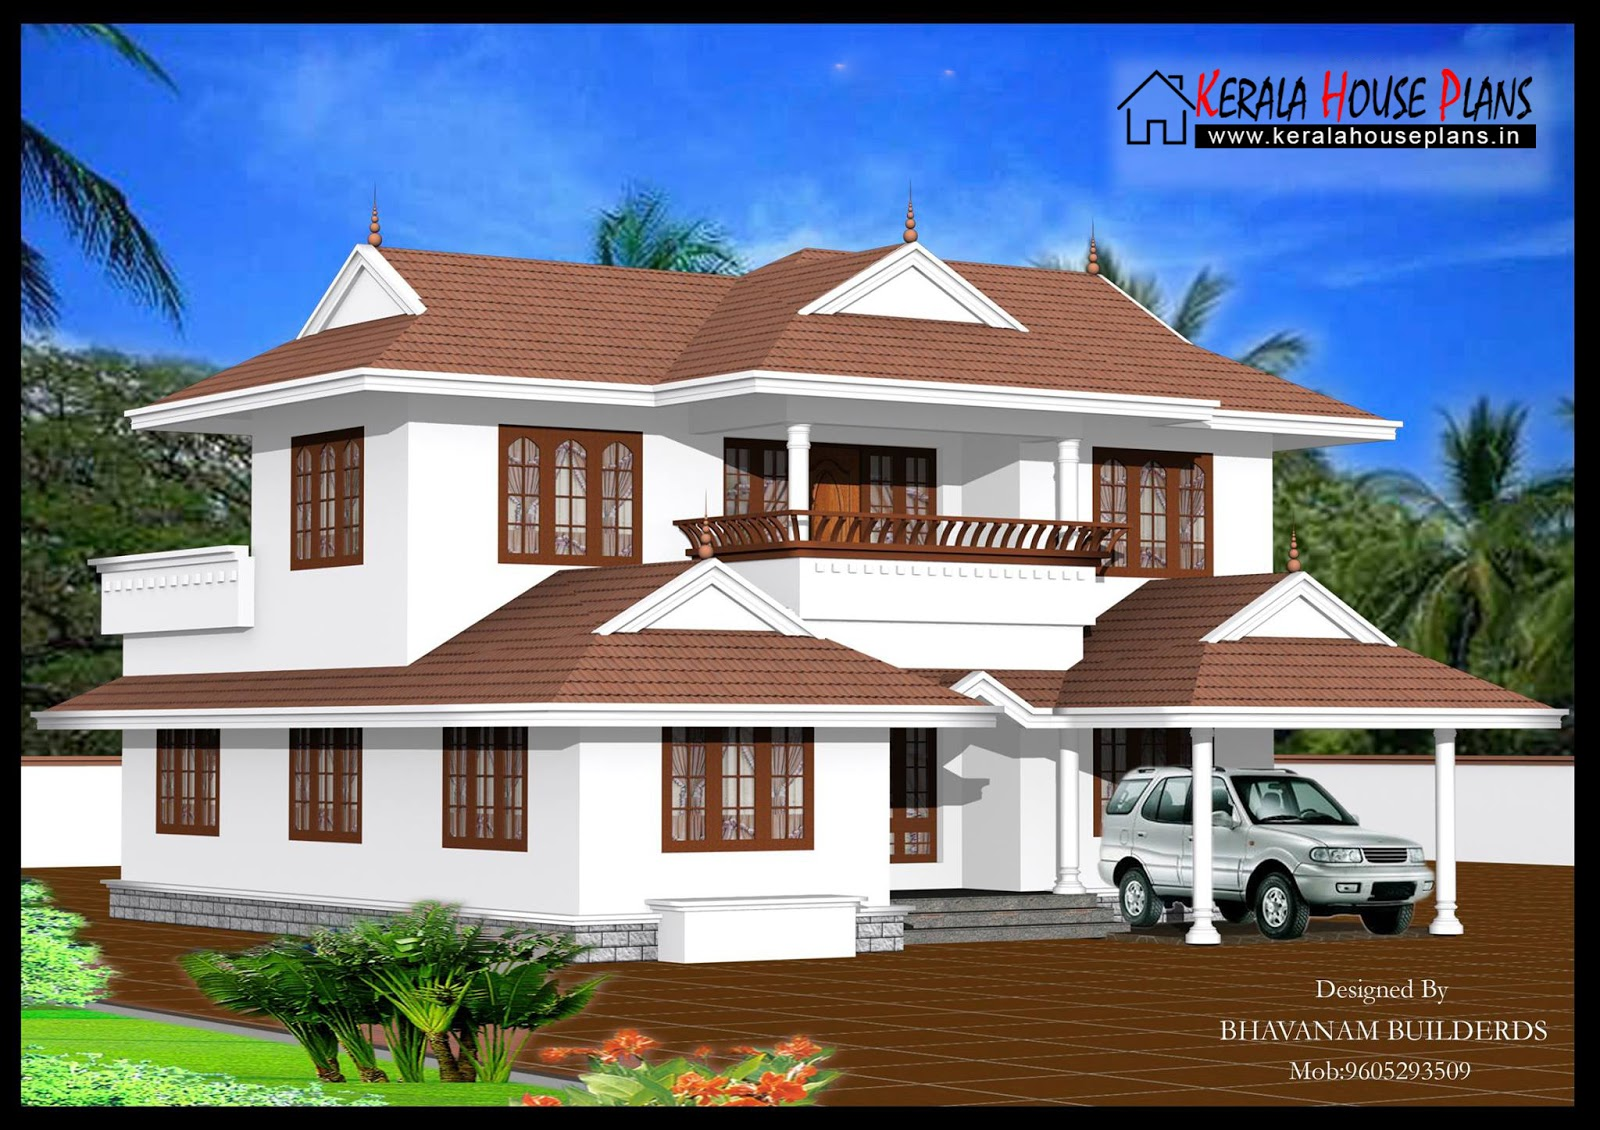 2000 sqft traditional kerala house design kerala house for Kerala traditional home plans with photos